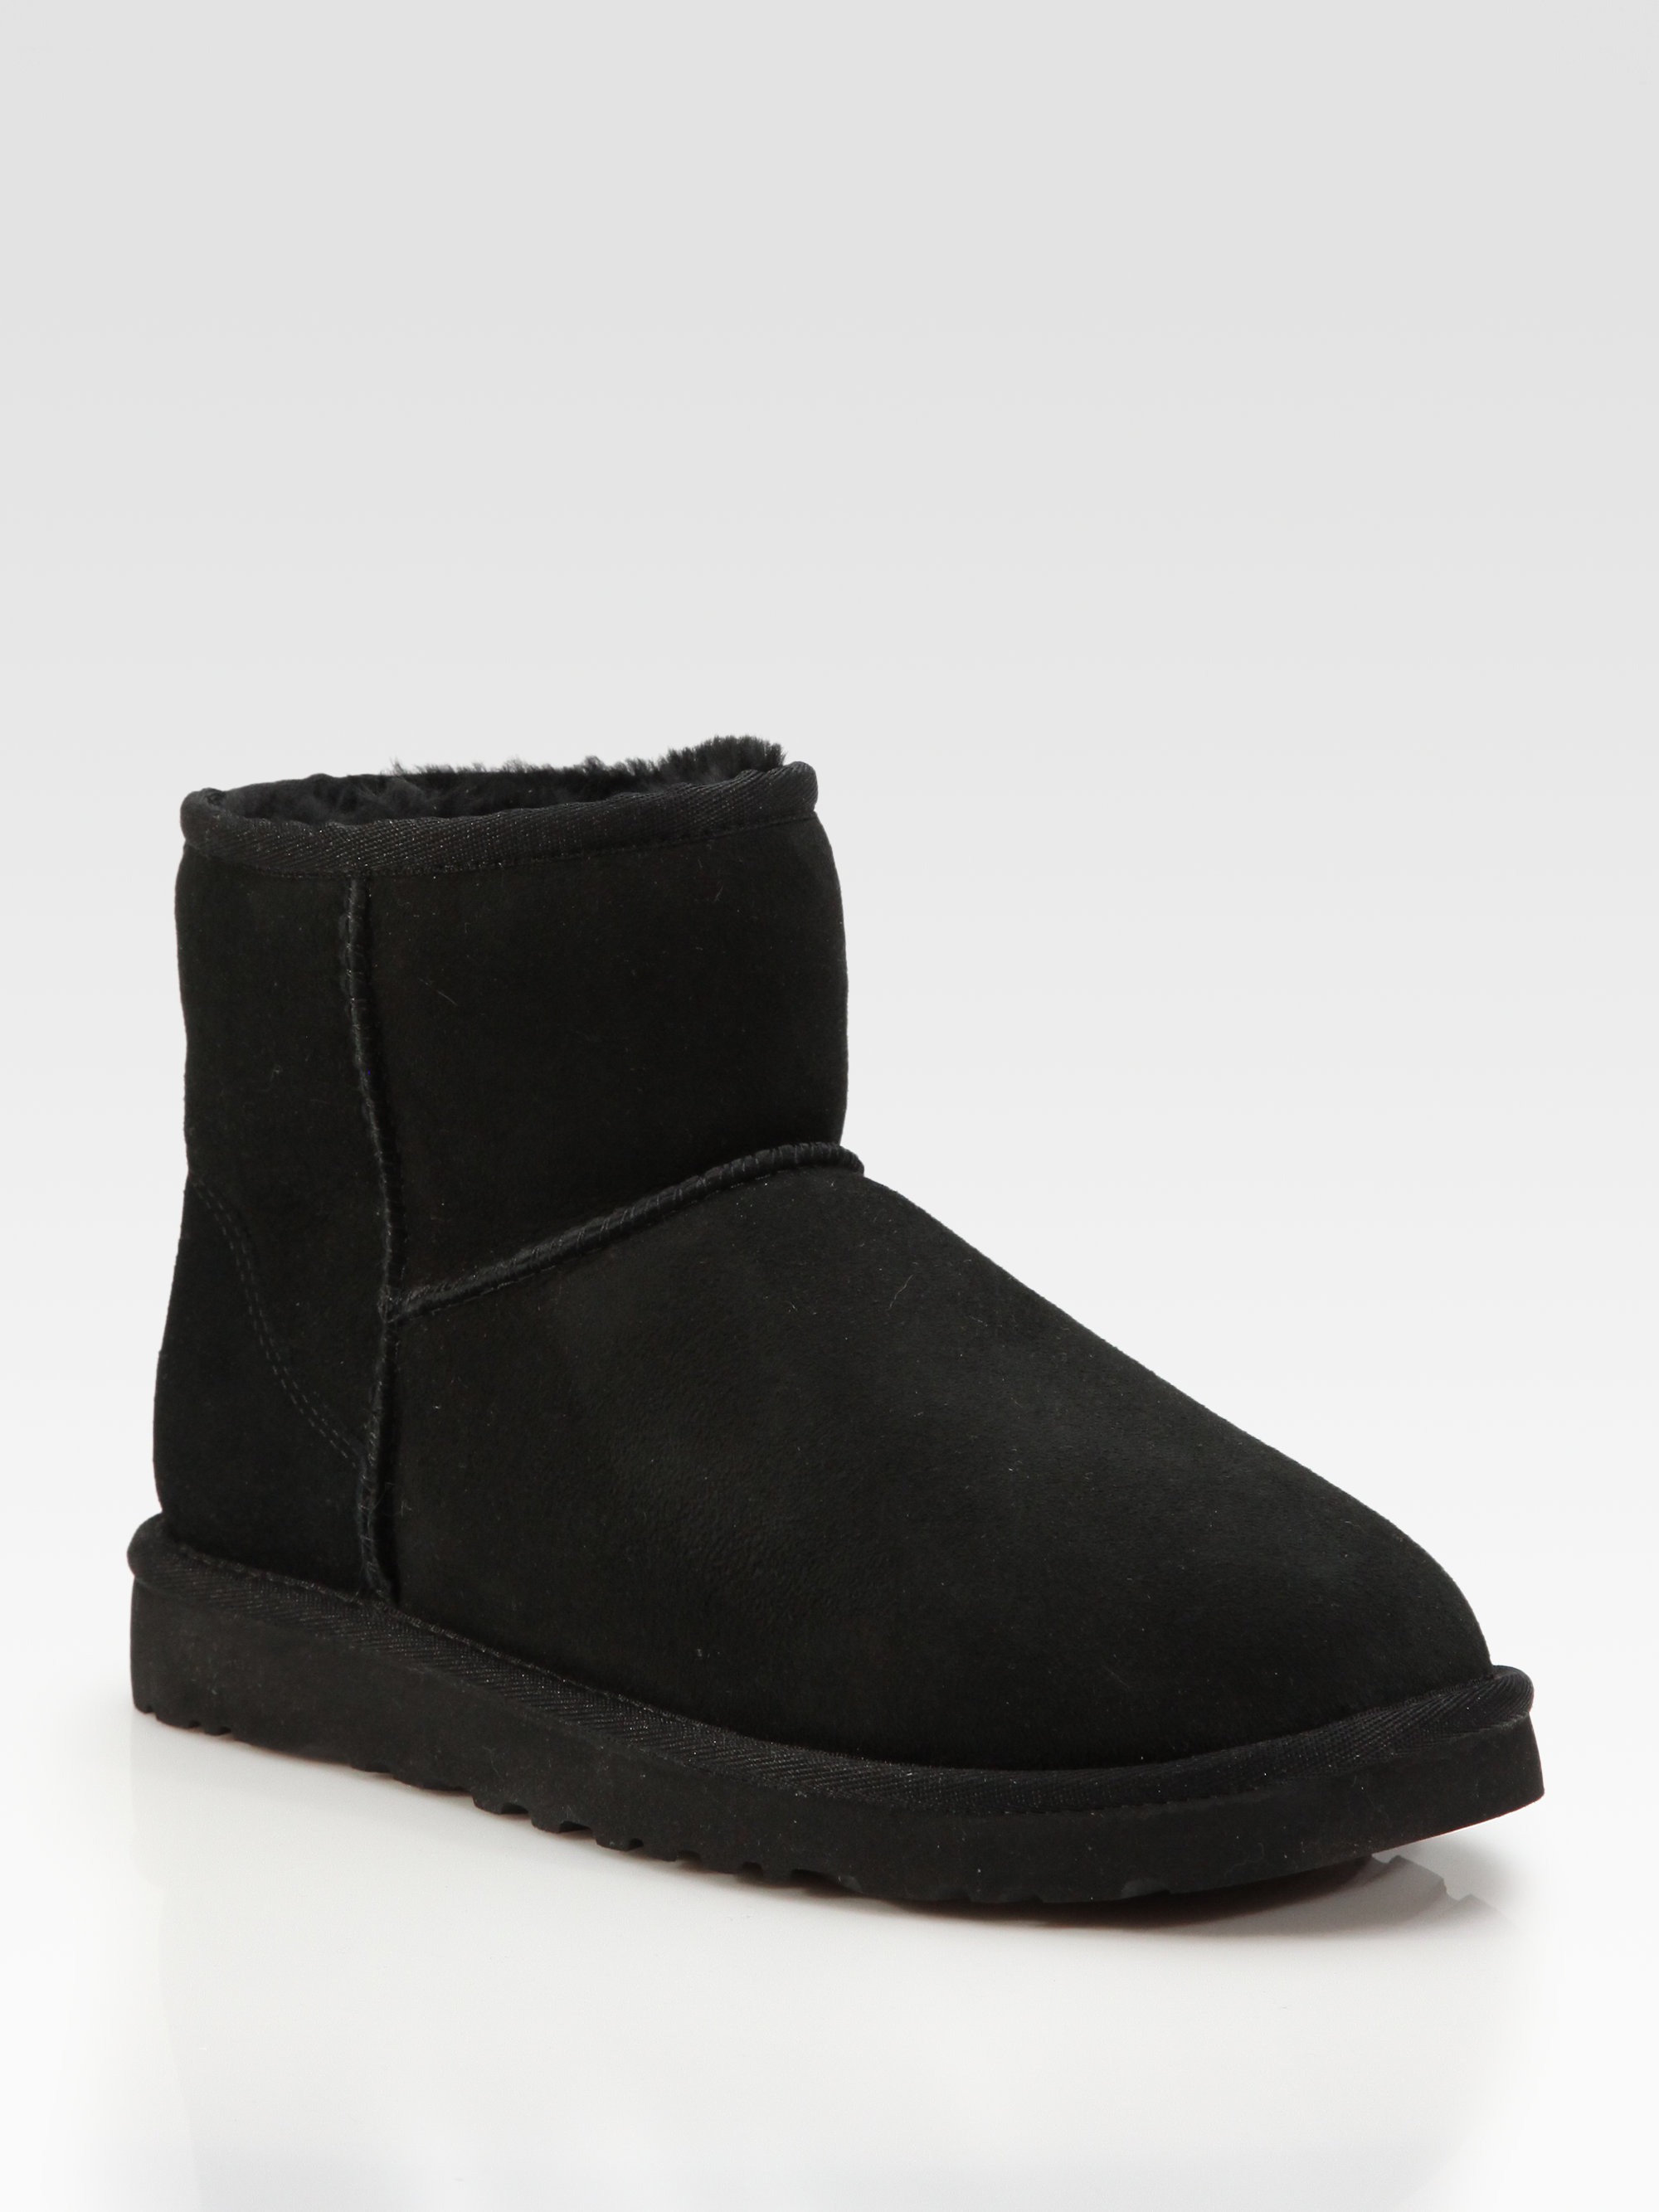 lyst ugg classic mini suede shearling boots in black. Black Bedroom Furniture Sets. Home Design Ideas